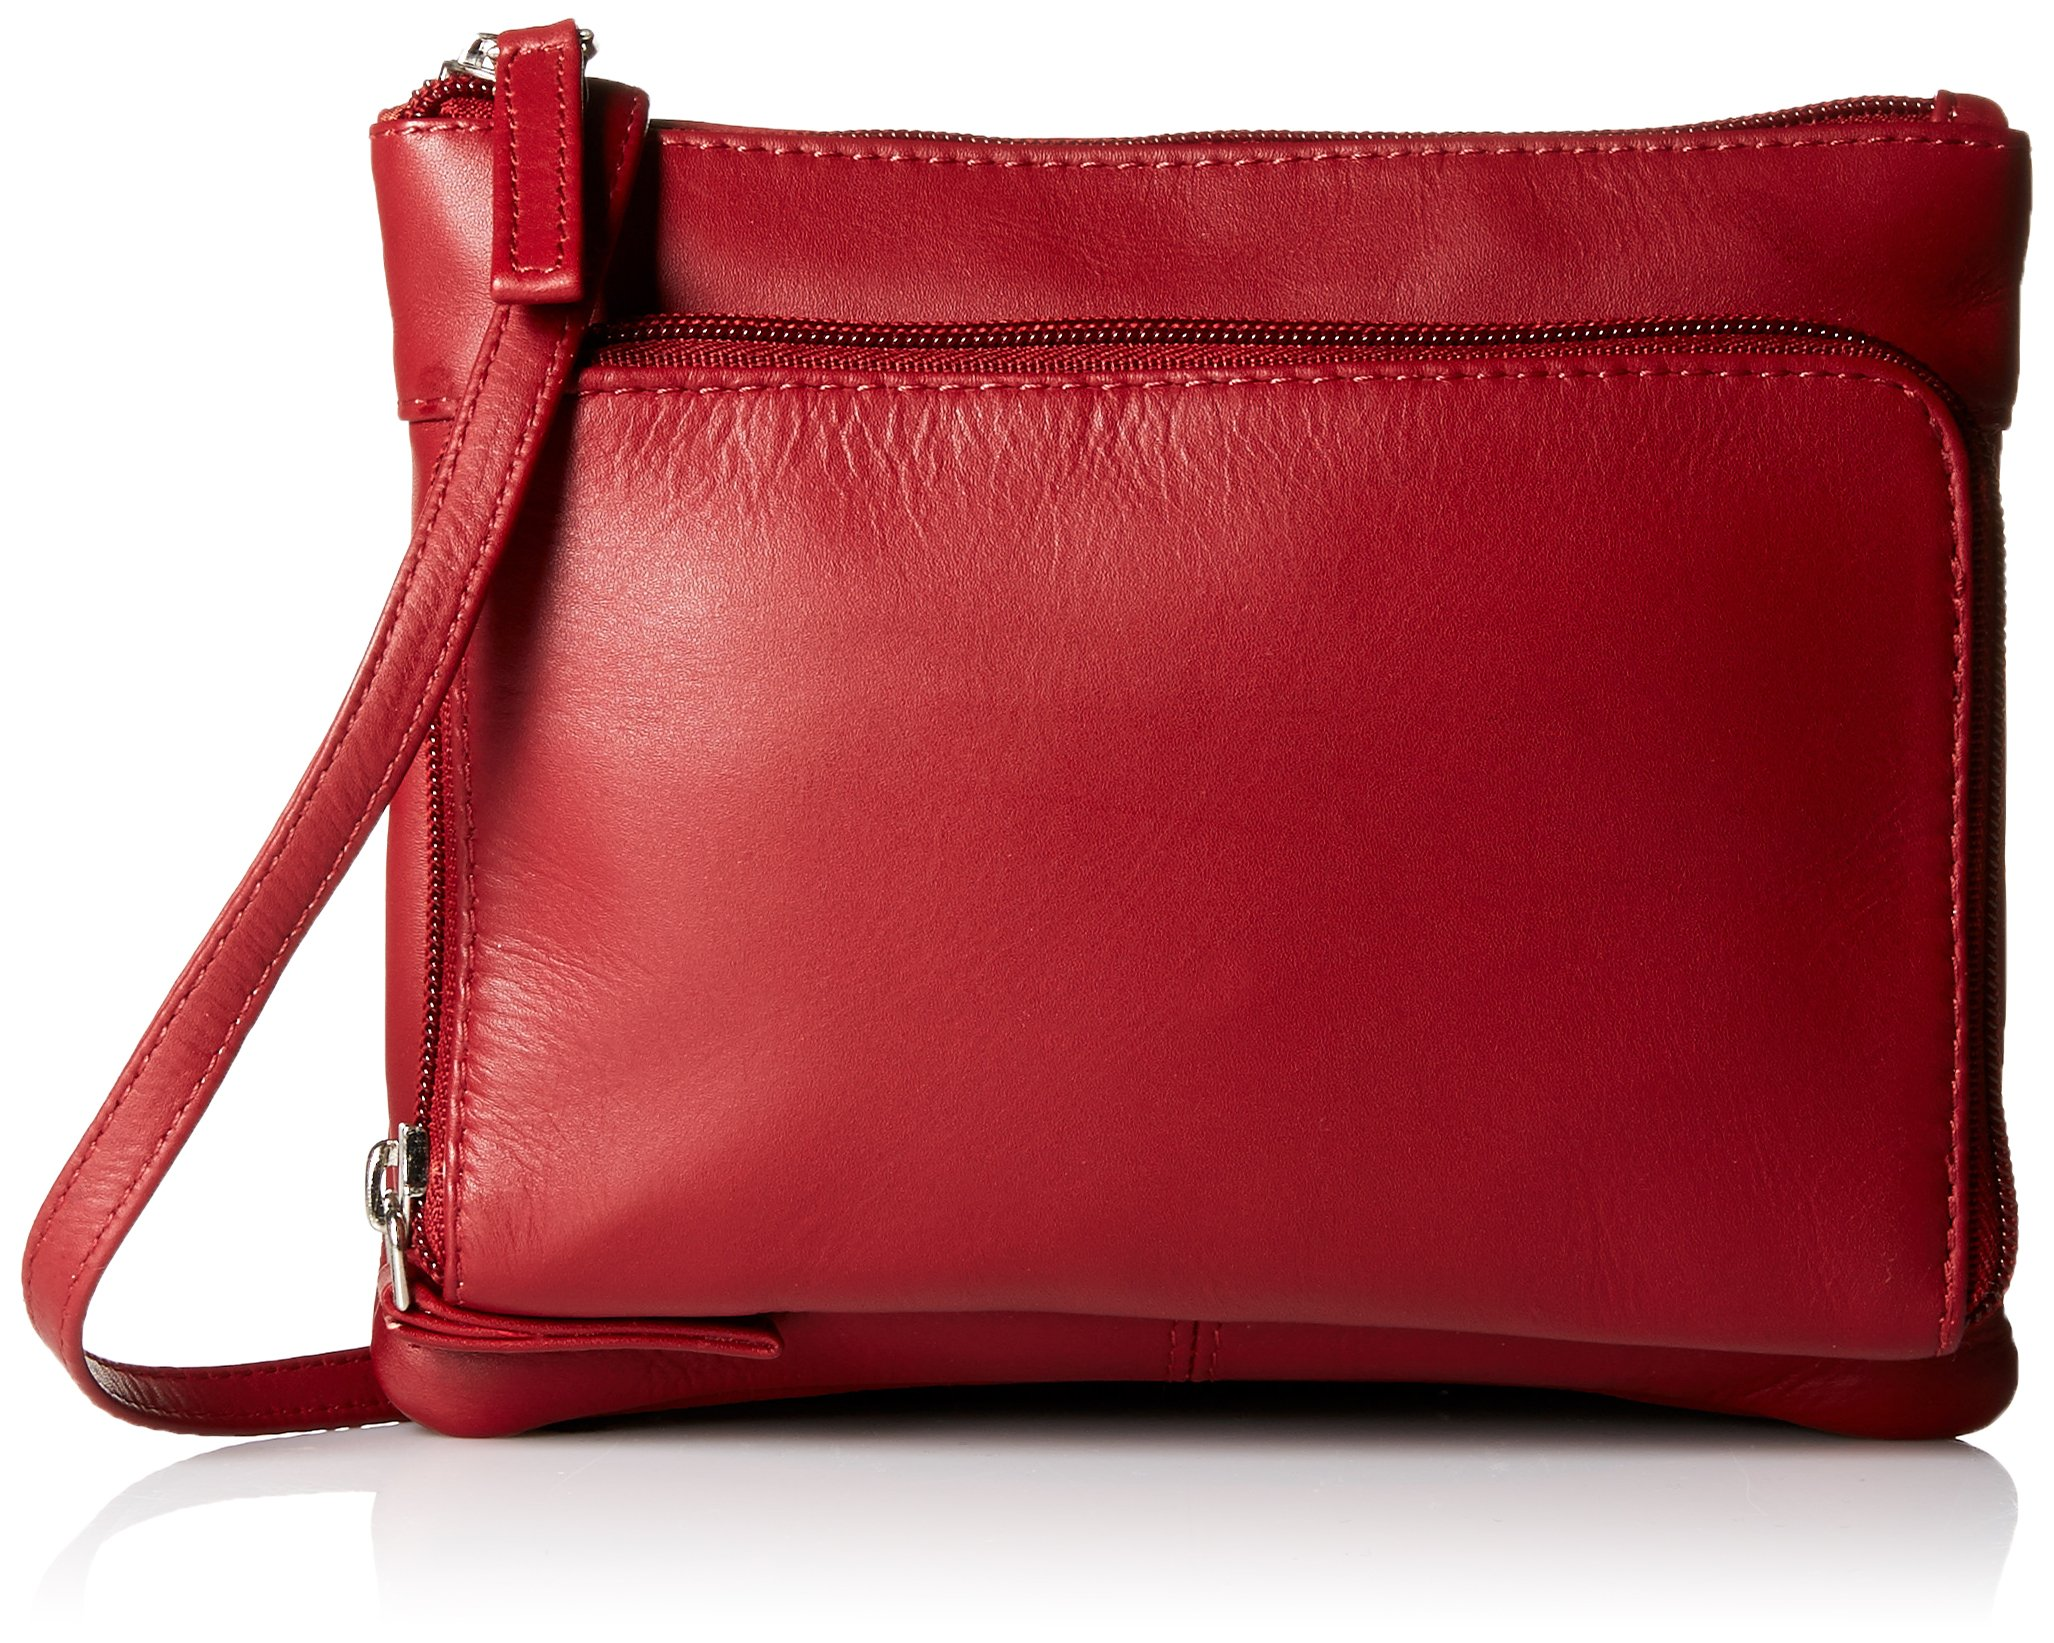 Visconti Visconti Sling Bag Handbag, Leather Messenger Bag for Ladies, Red, One Size